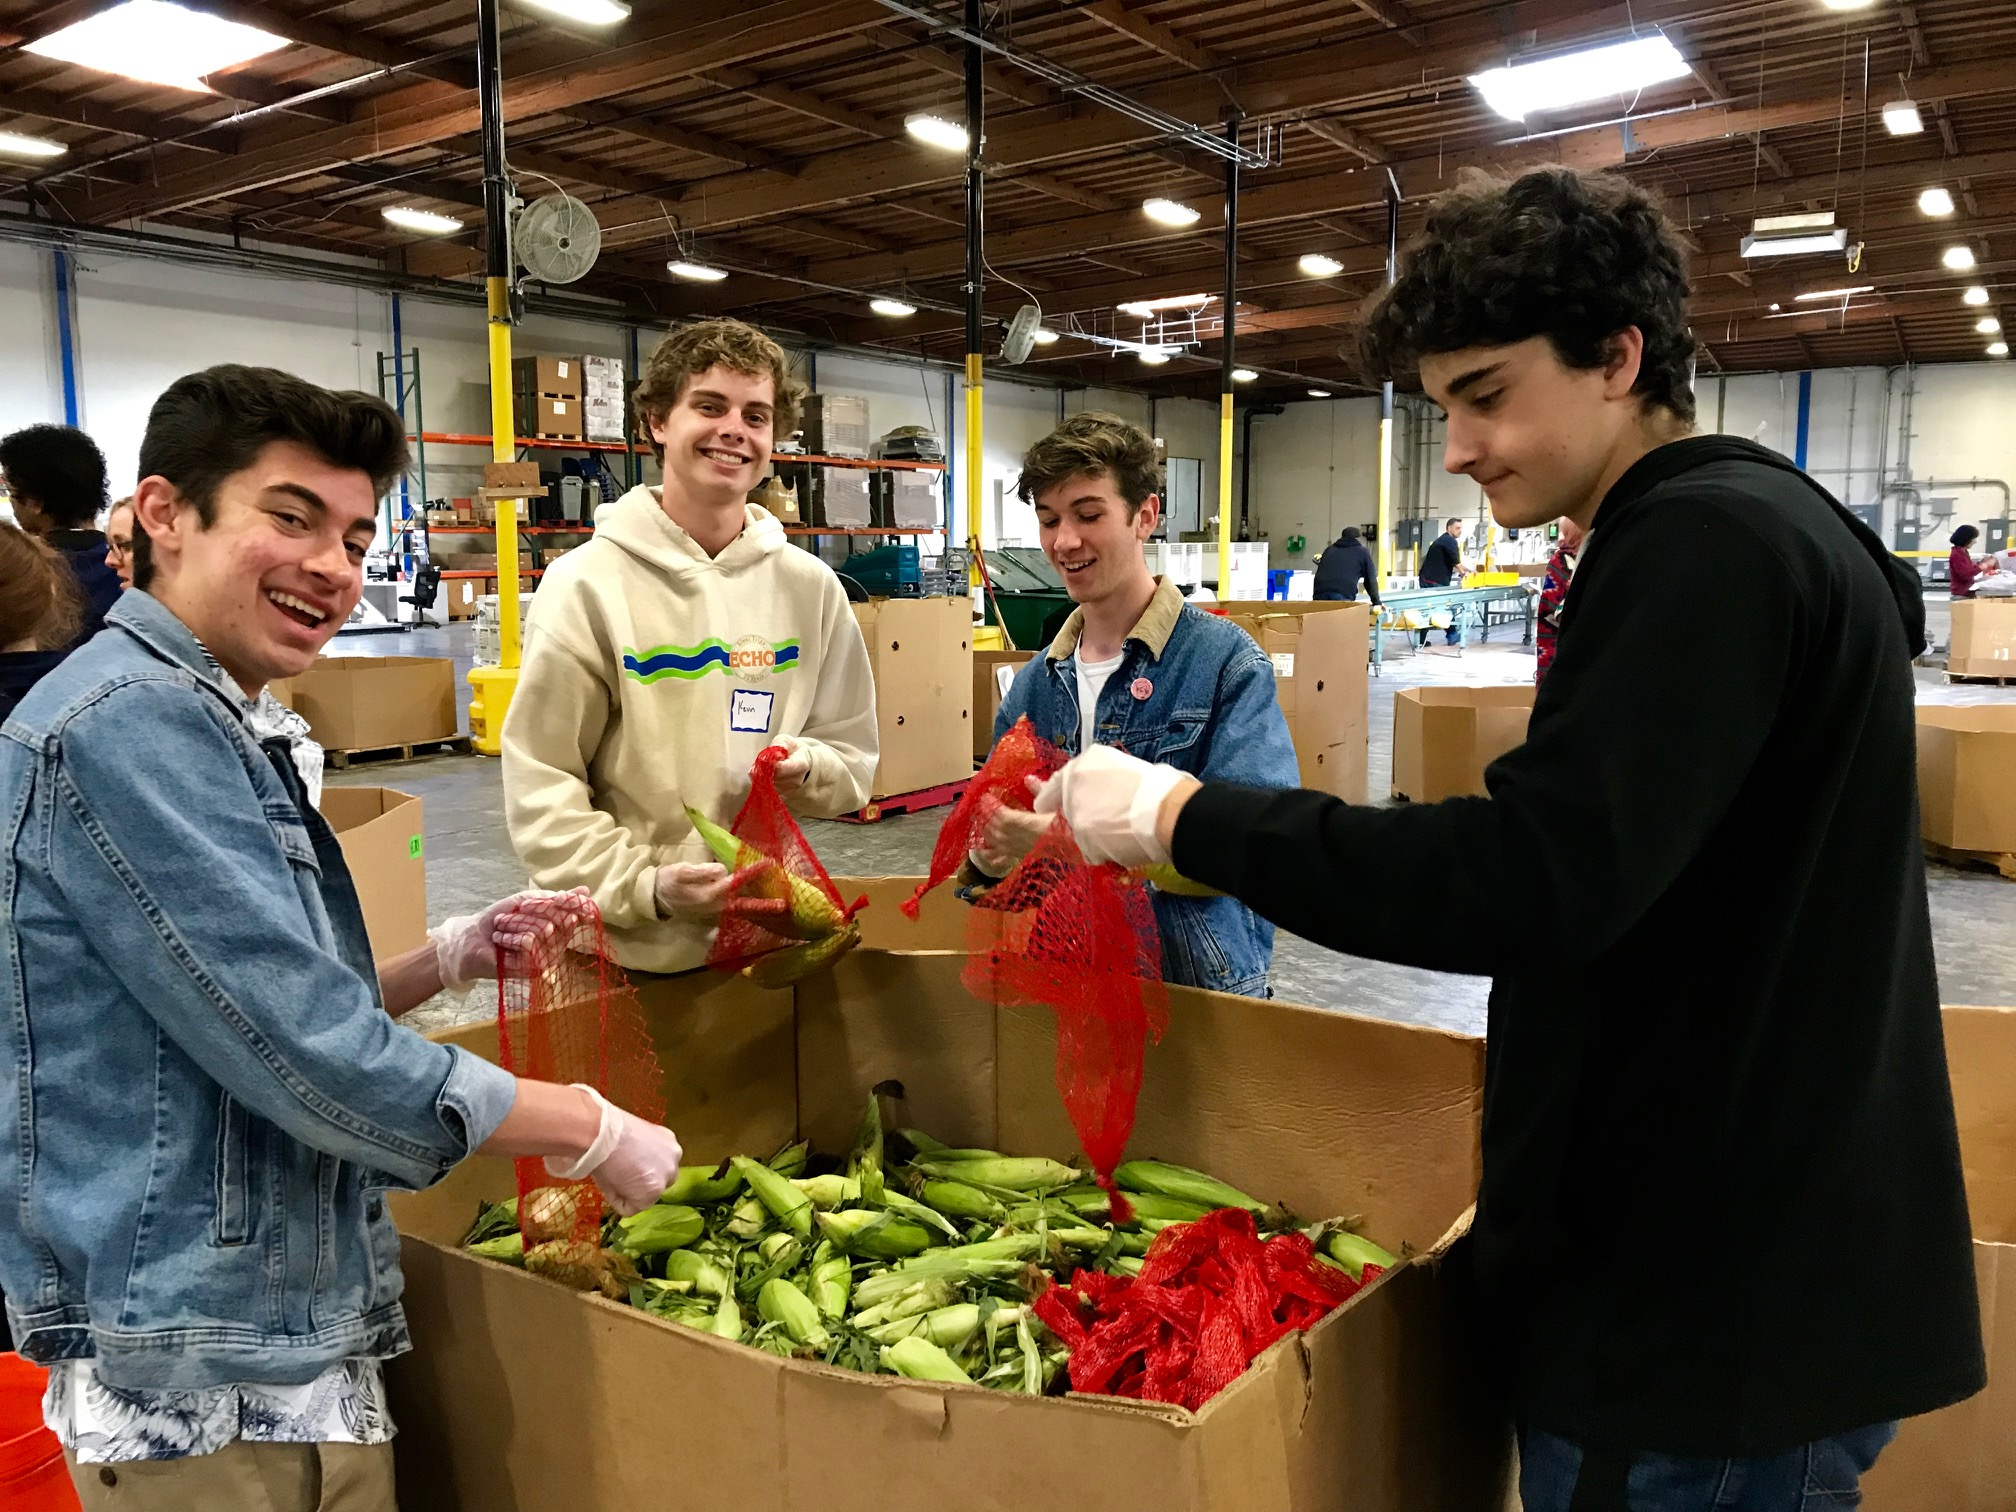 Alameda Food Bank – Service Day